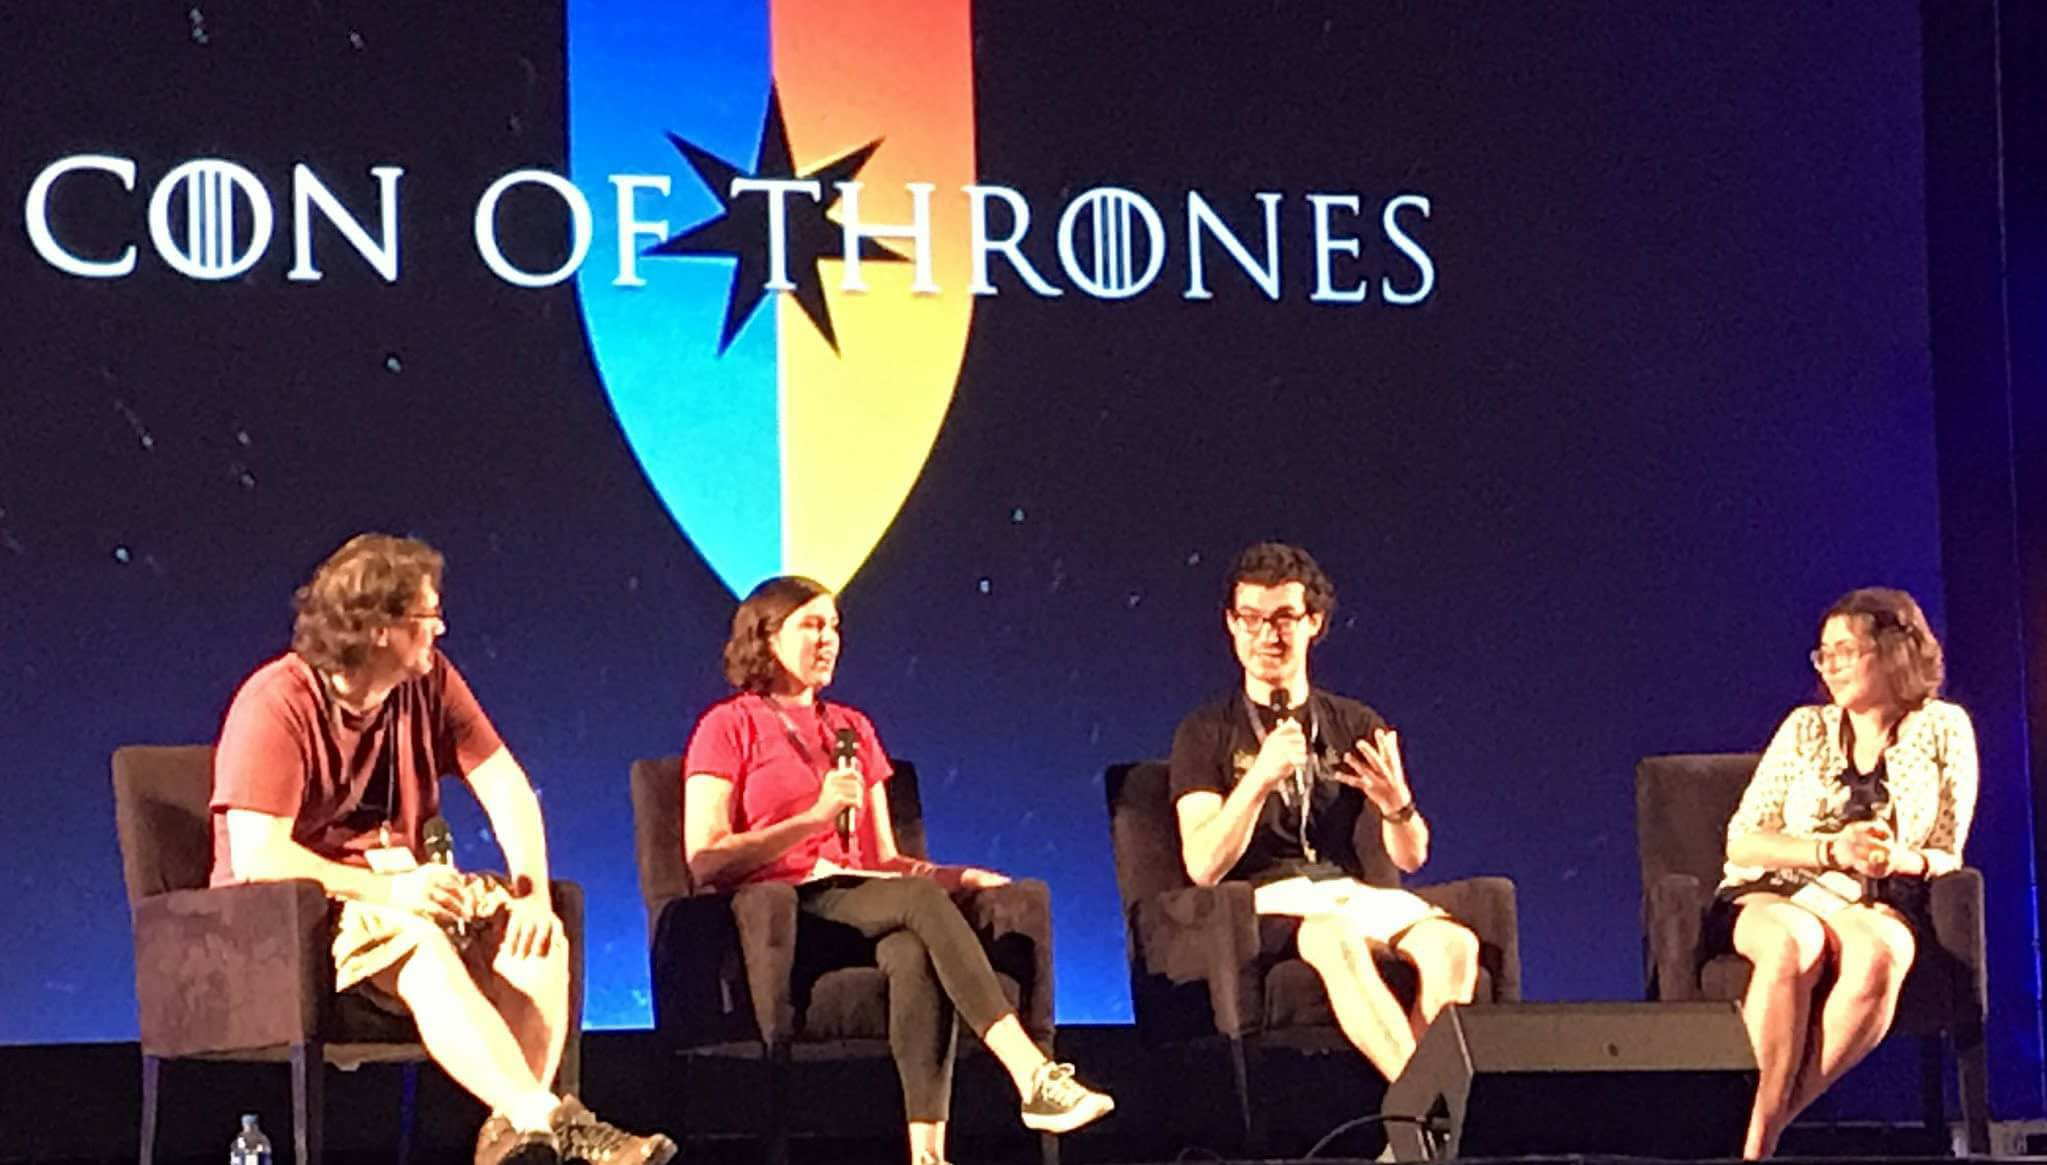 Axechucker, Kim Renfro, Me, and Bex, ardently defending Sansa Stark on our Con of Thrones 2017 panel.